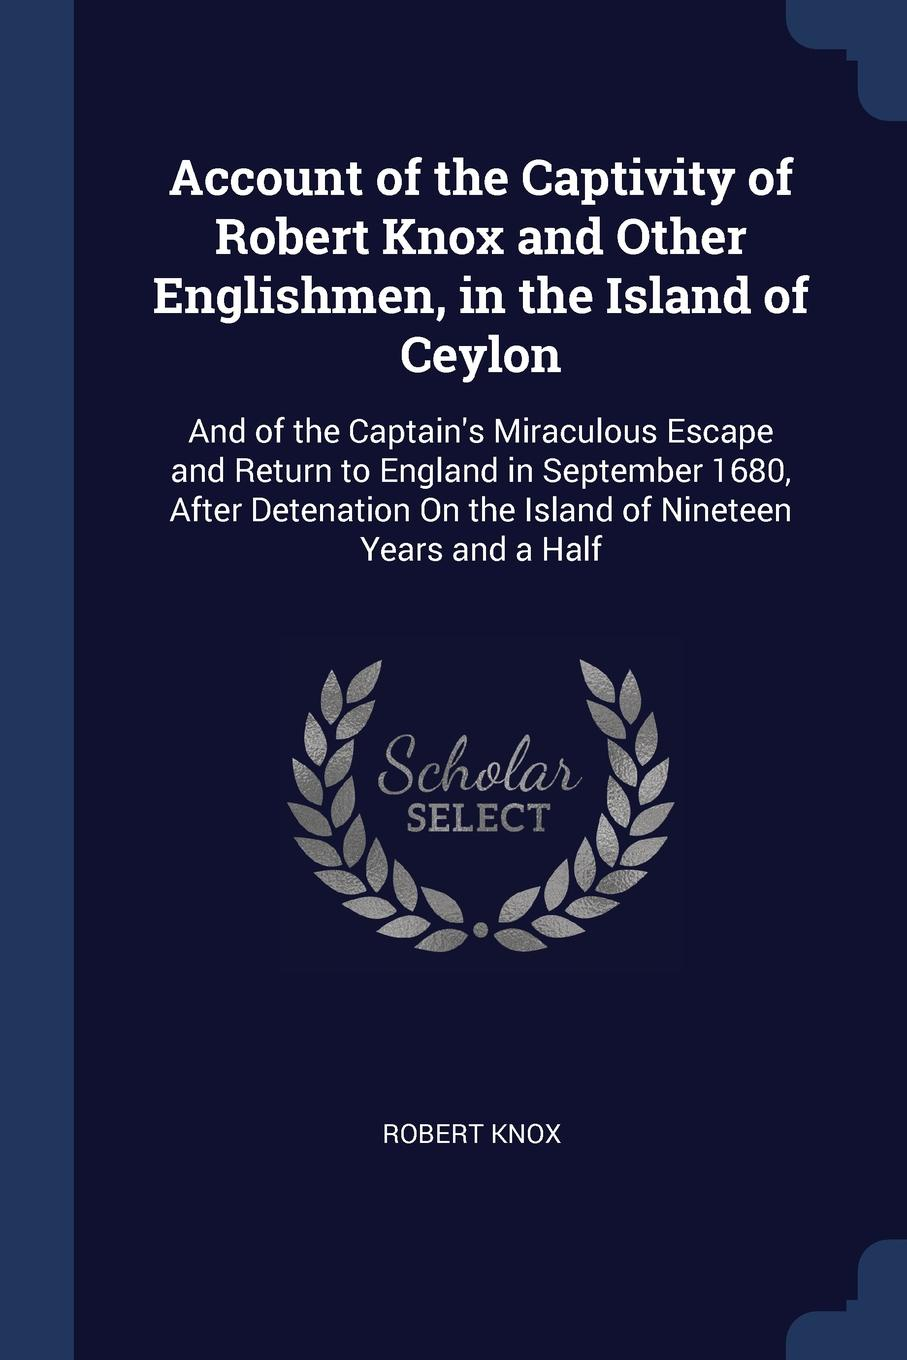 Robert Knox Account of the Captivity of Robert Knox and Other Englishmen, in the Island of Ceylon. And of the Captain.s Miraculous Escape and Return to England in September 1680, After Detenation On the Island of Nineteen Years and a Half цены онлайн